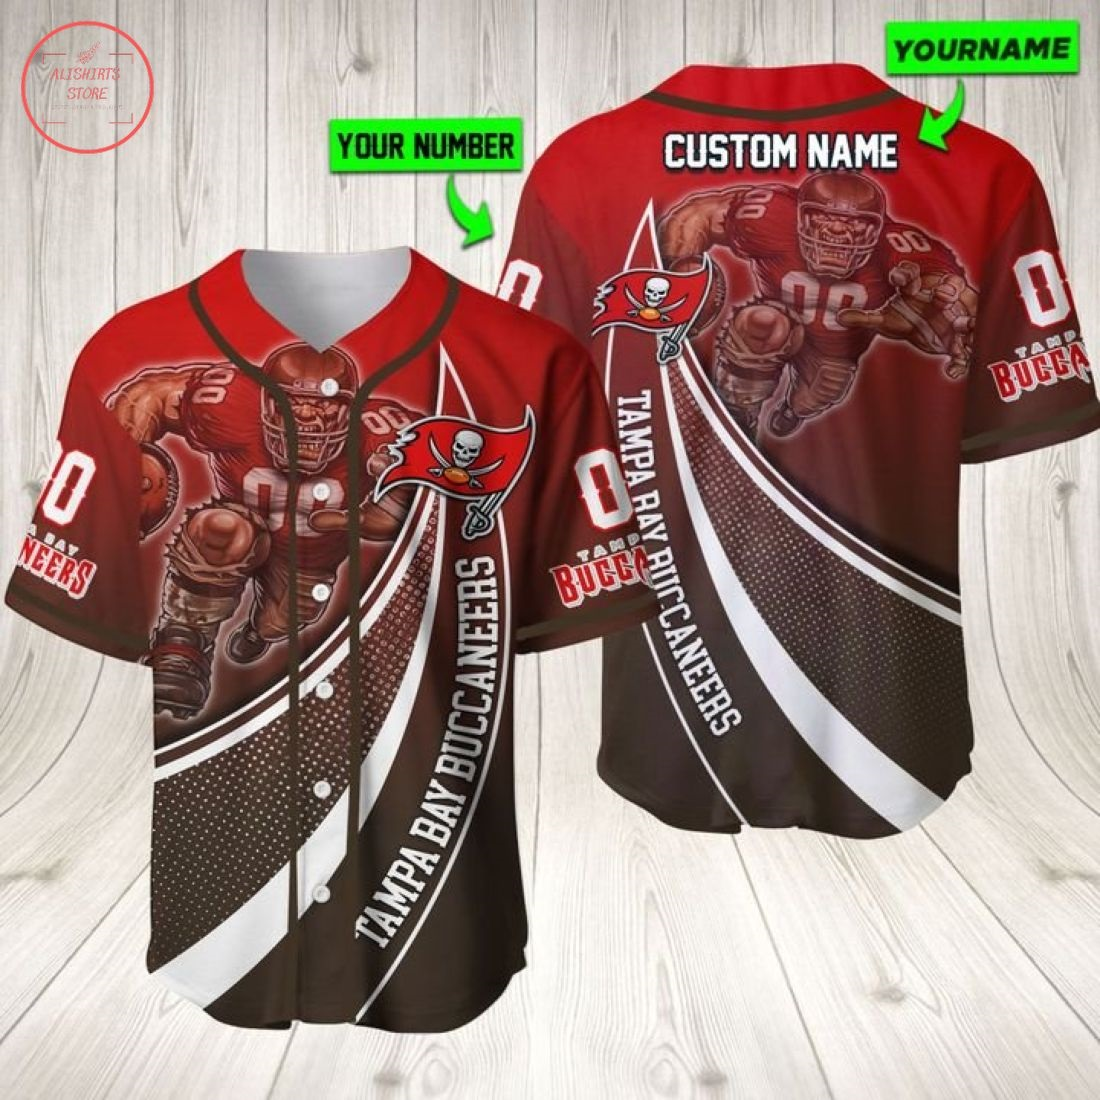 Tampa Bay Buccaneers Personalized Baseball Jersey